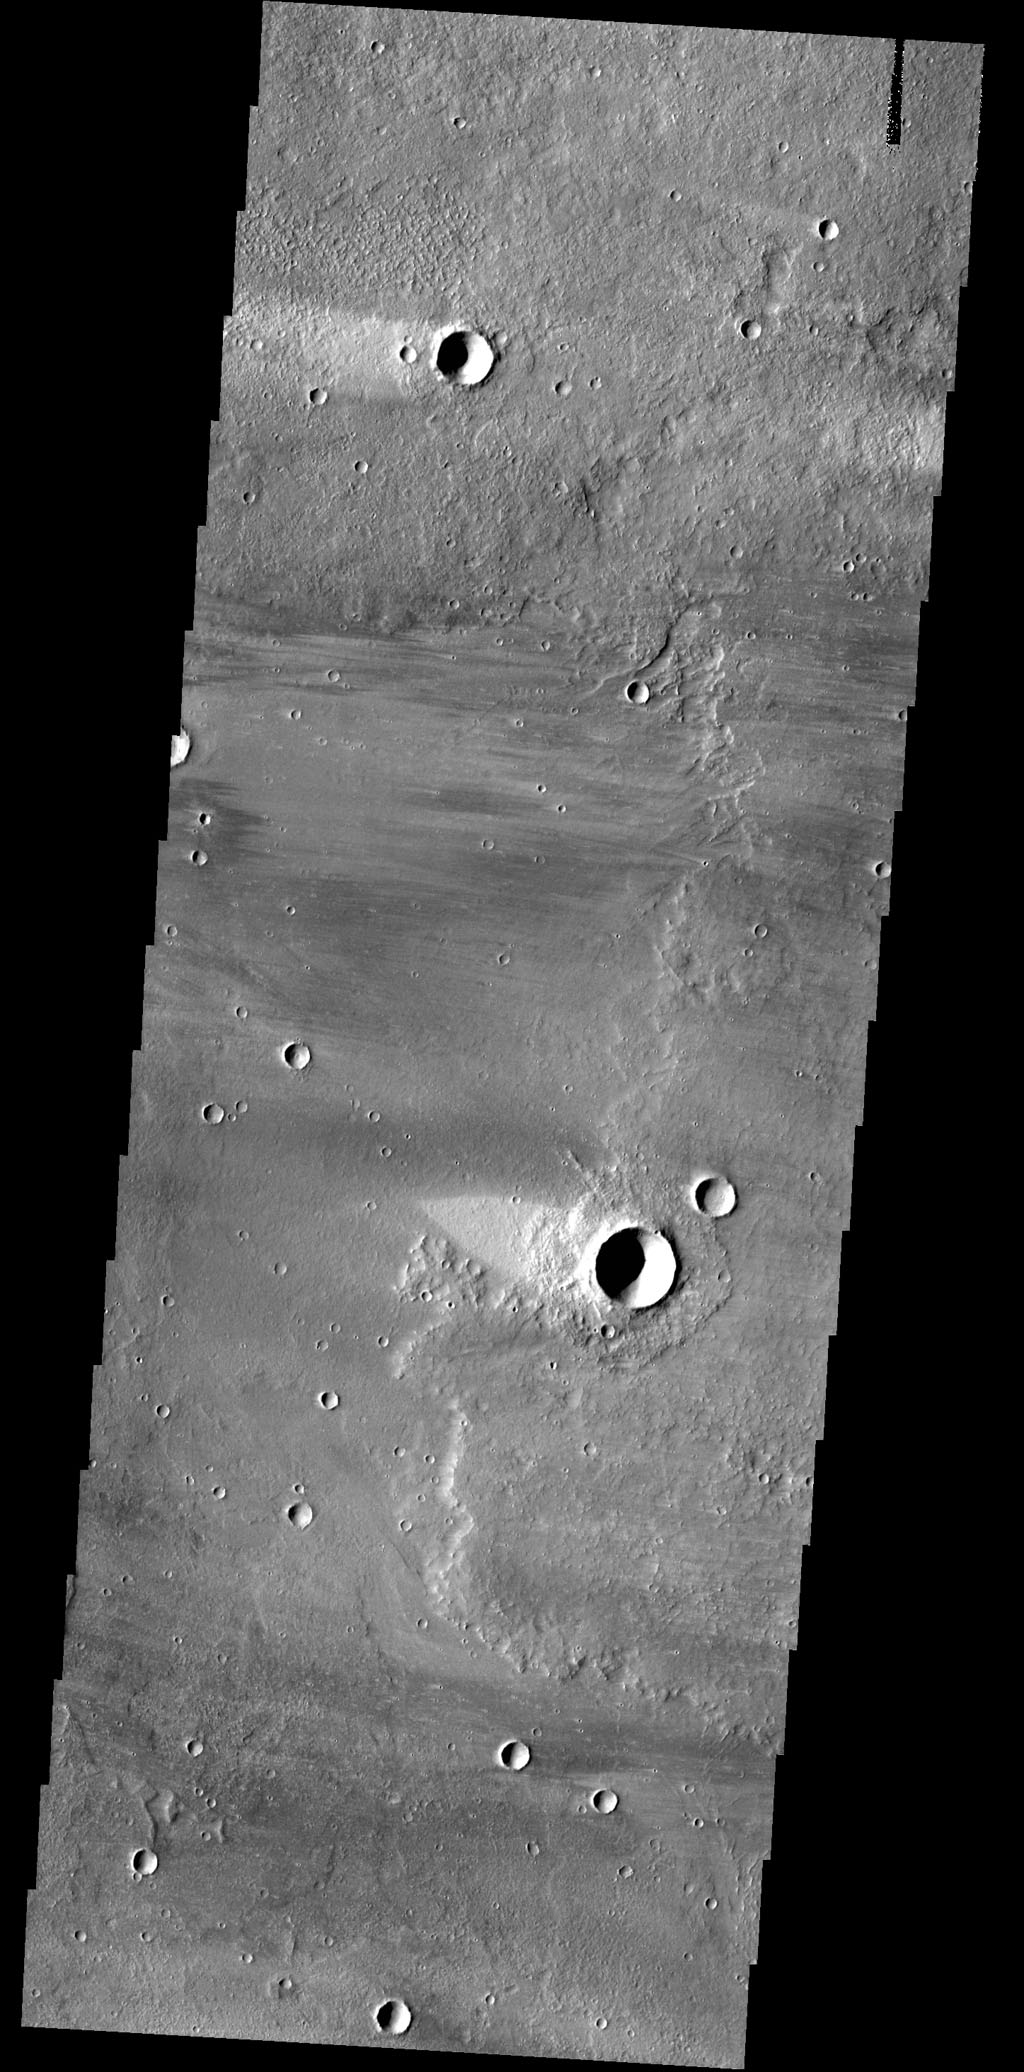 A delta deposit is located where a channel enters Ismenius Cavus in this image captured by NASA's 2001 Mars Odyssey spacecraft.